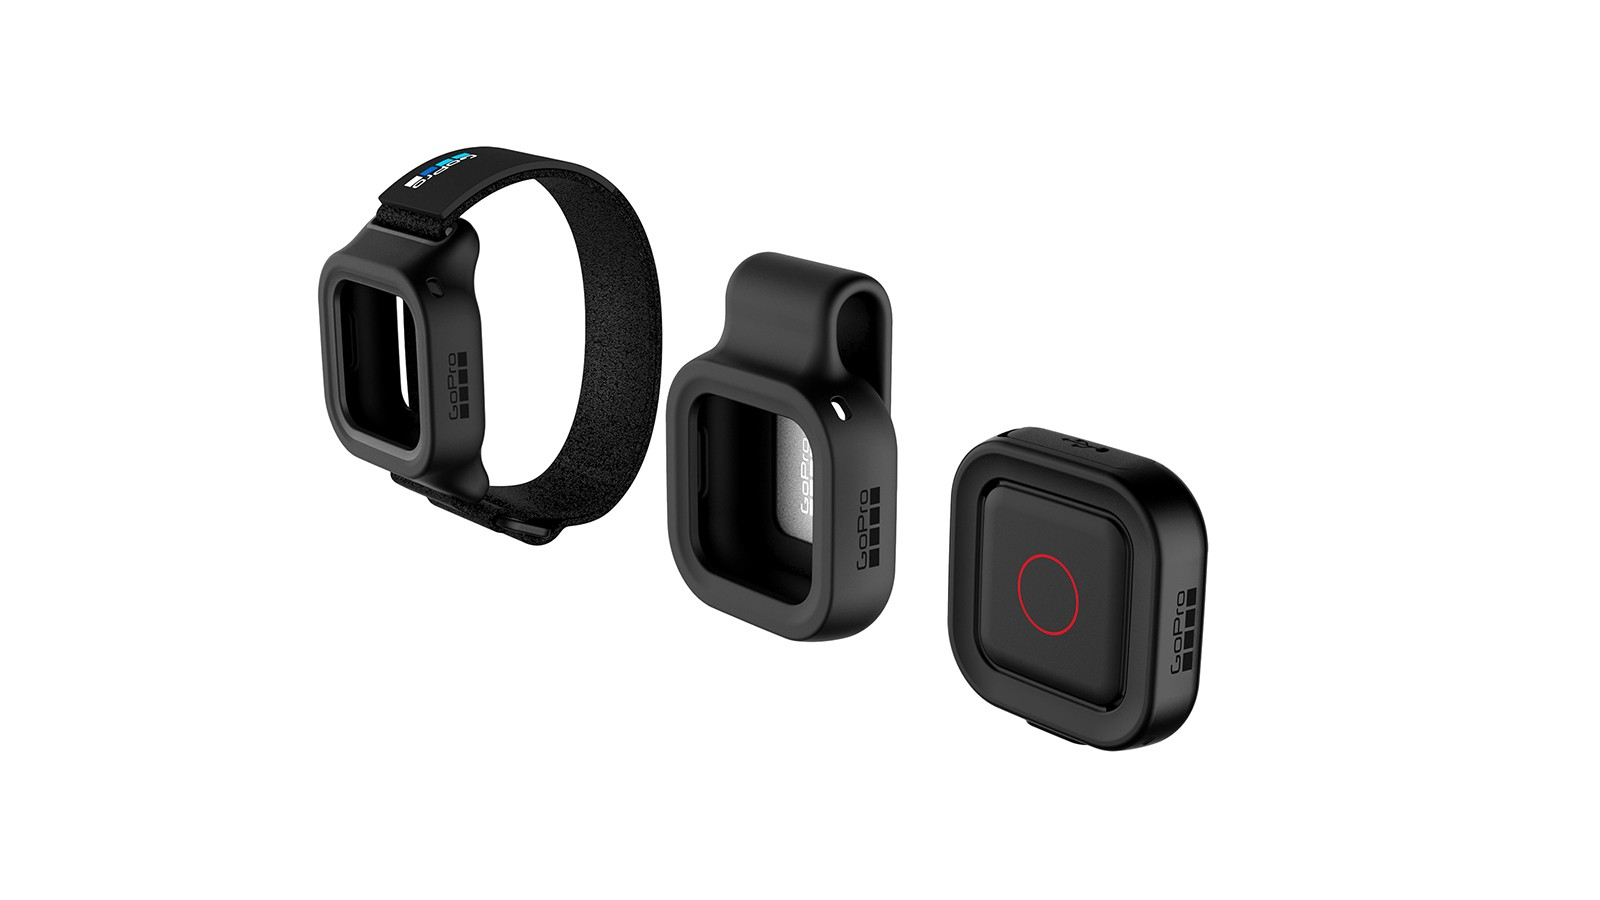 The Remo comes with housings to clip onto clothing or wear on your wrist